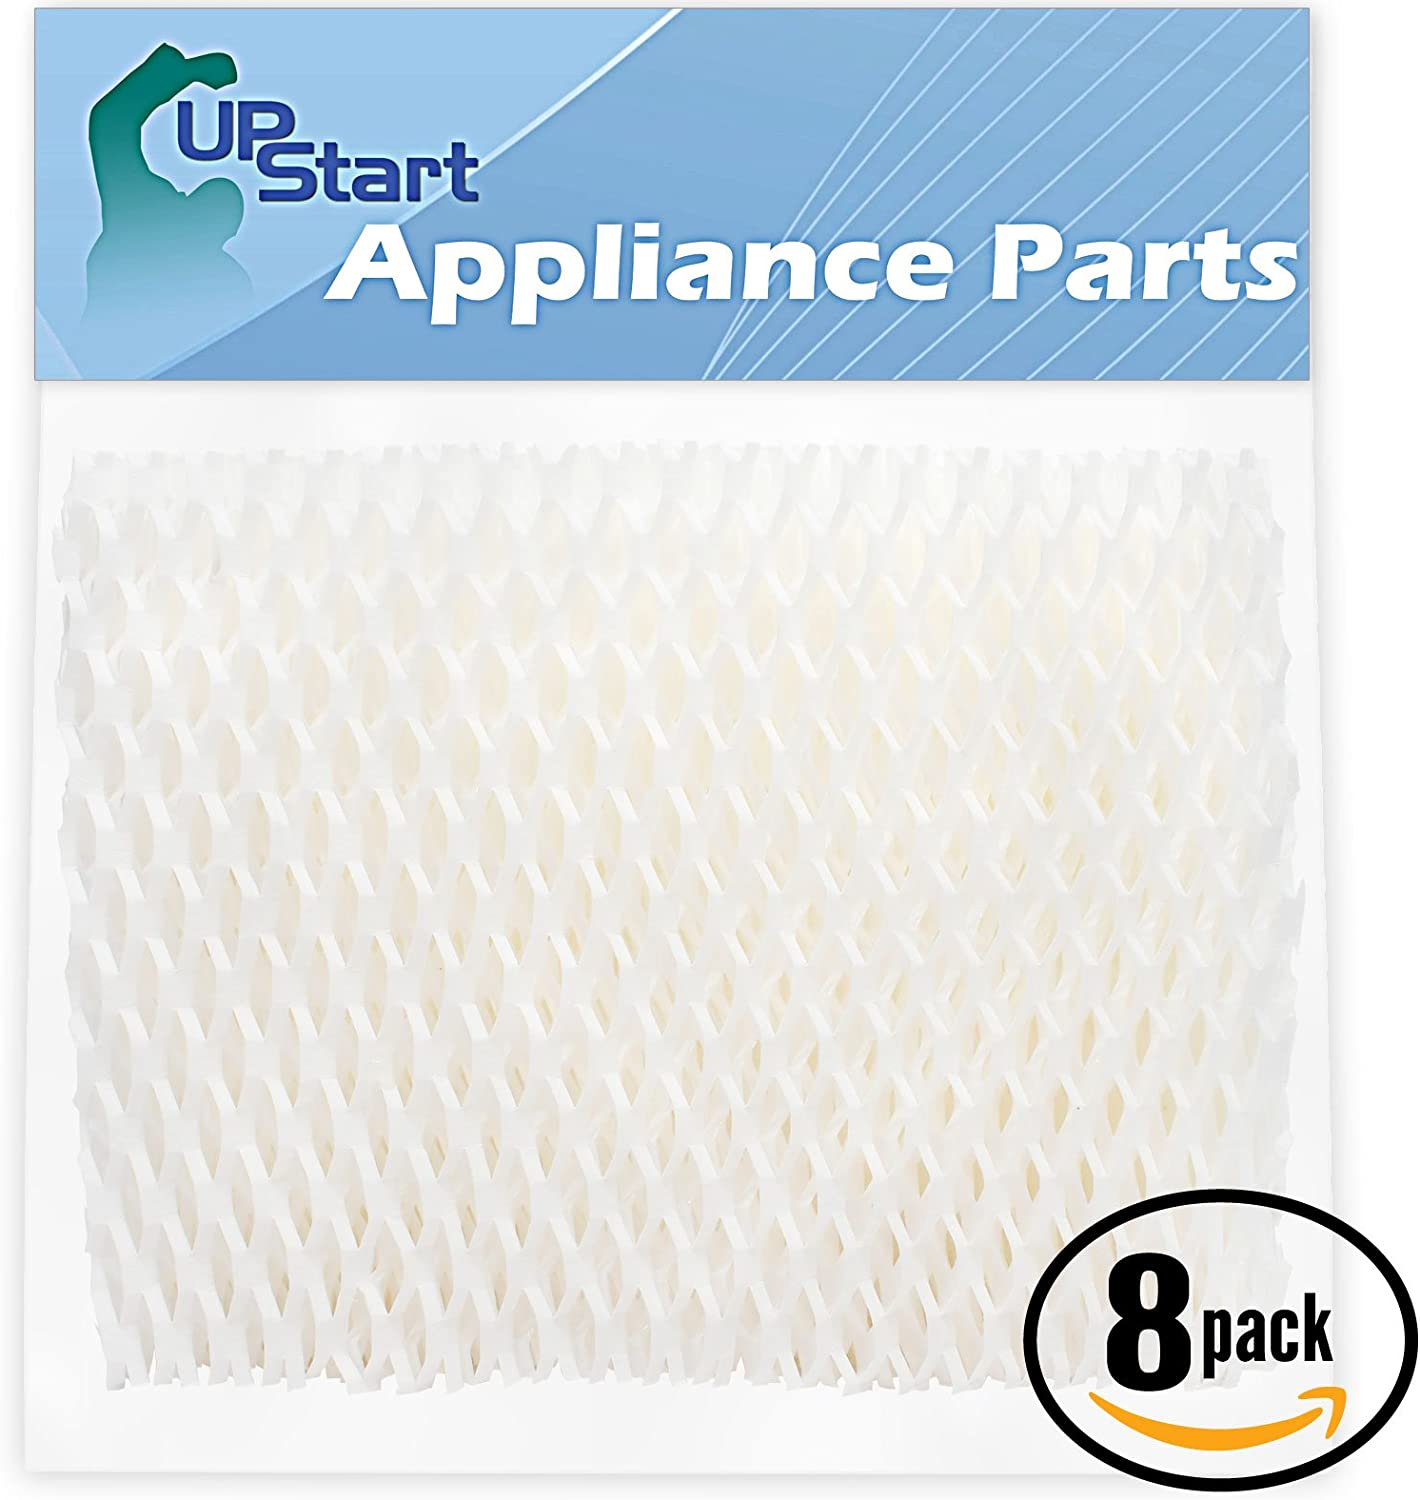 Upstart Battery 8-Pack Replacement 2H00 Humidifier Filter for 1.5 Gallon Graco TrueAir - Compatible with Graco Cool Mist Humidifier, Graco 2H00, Graco 2H01, TrueAir 05510, Graco 2H001